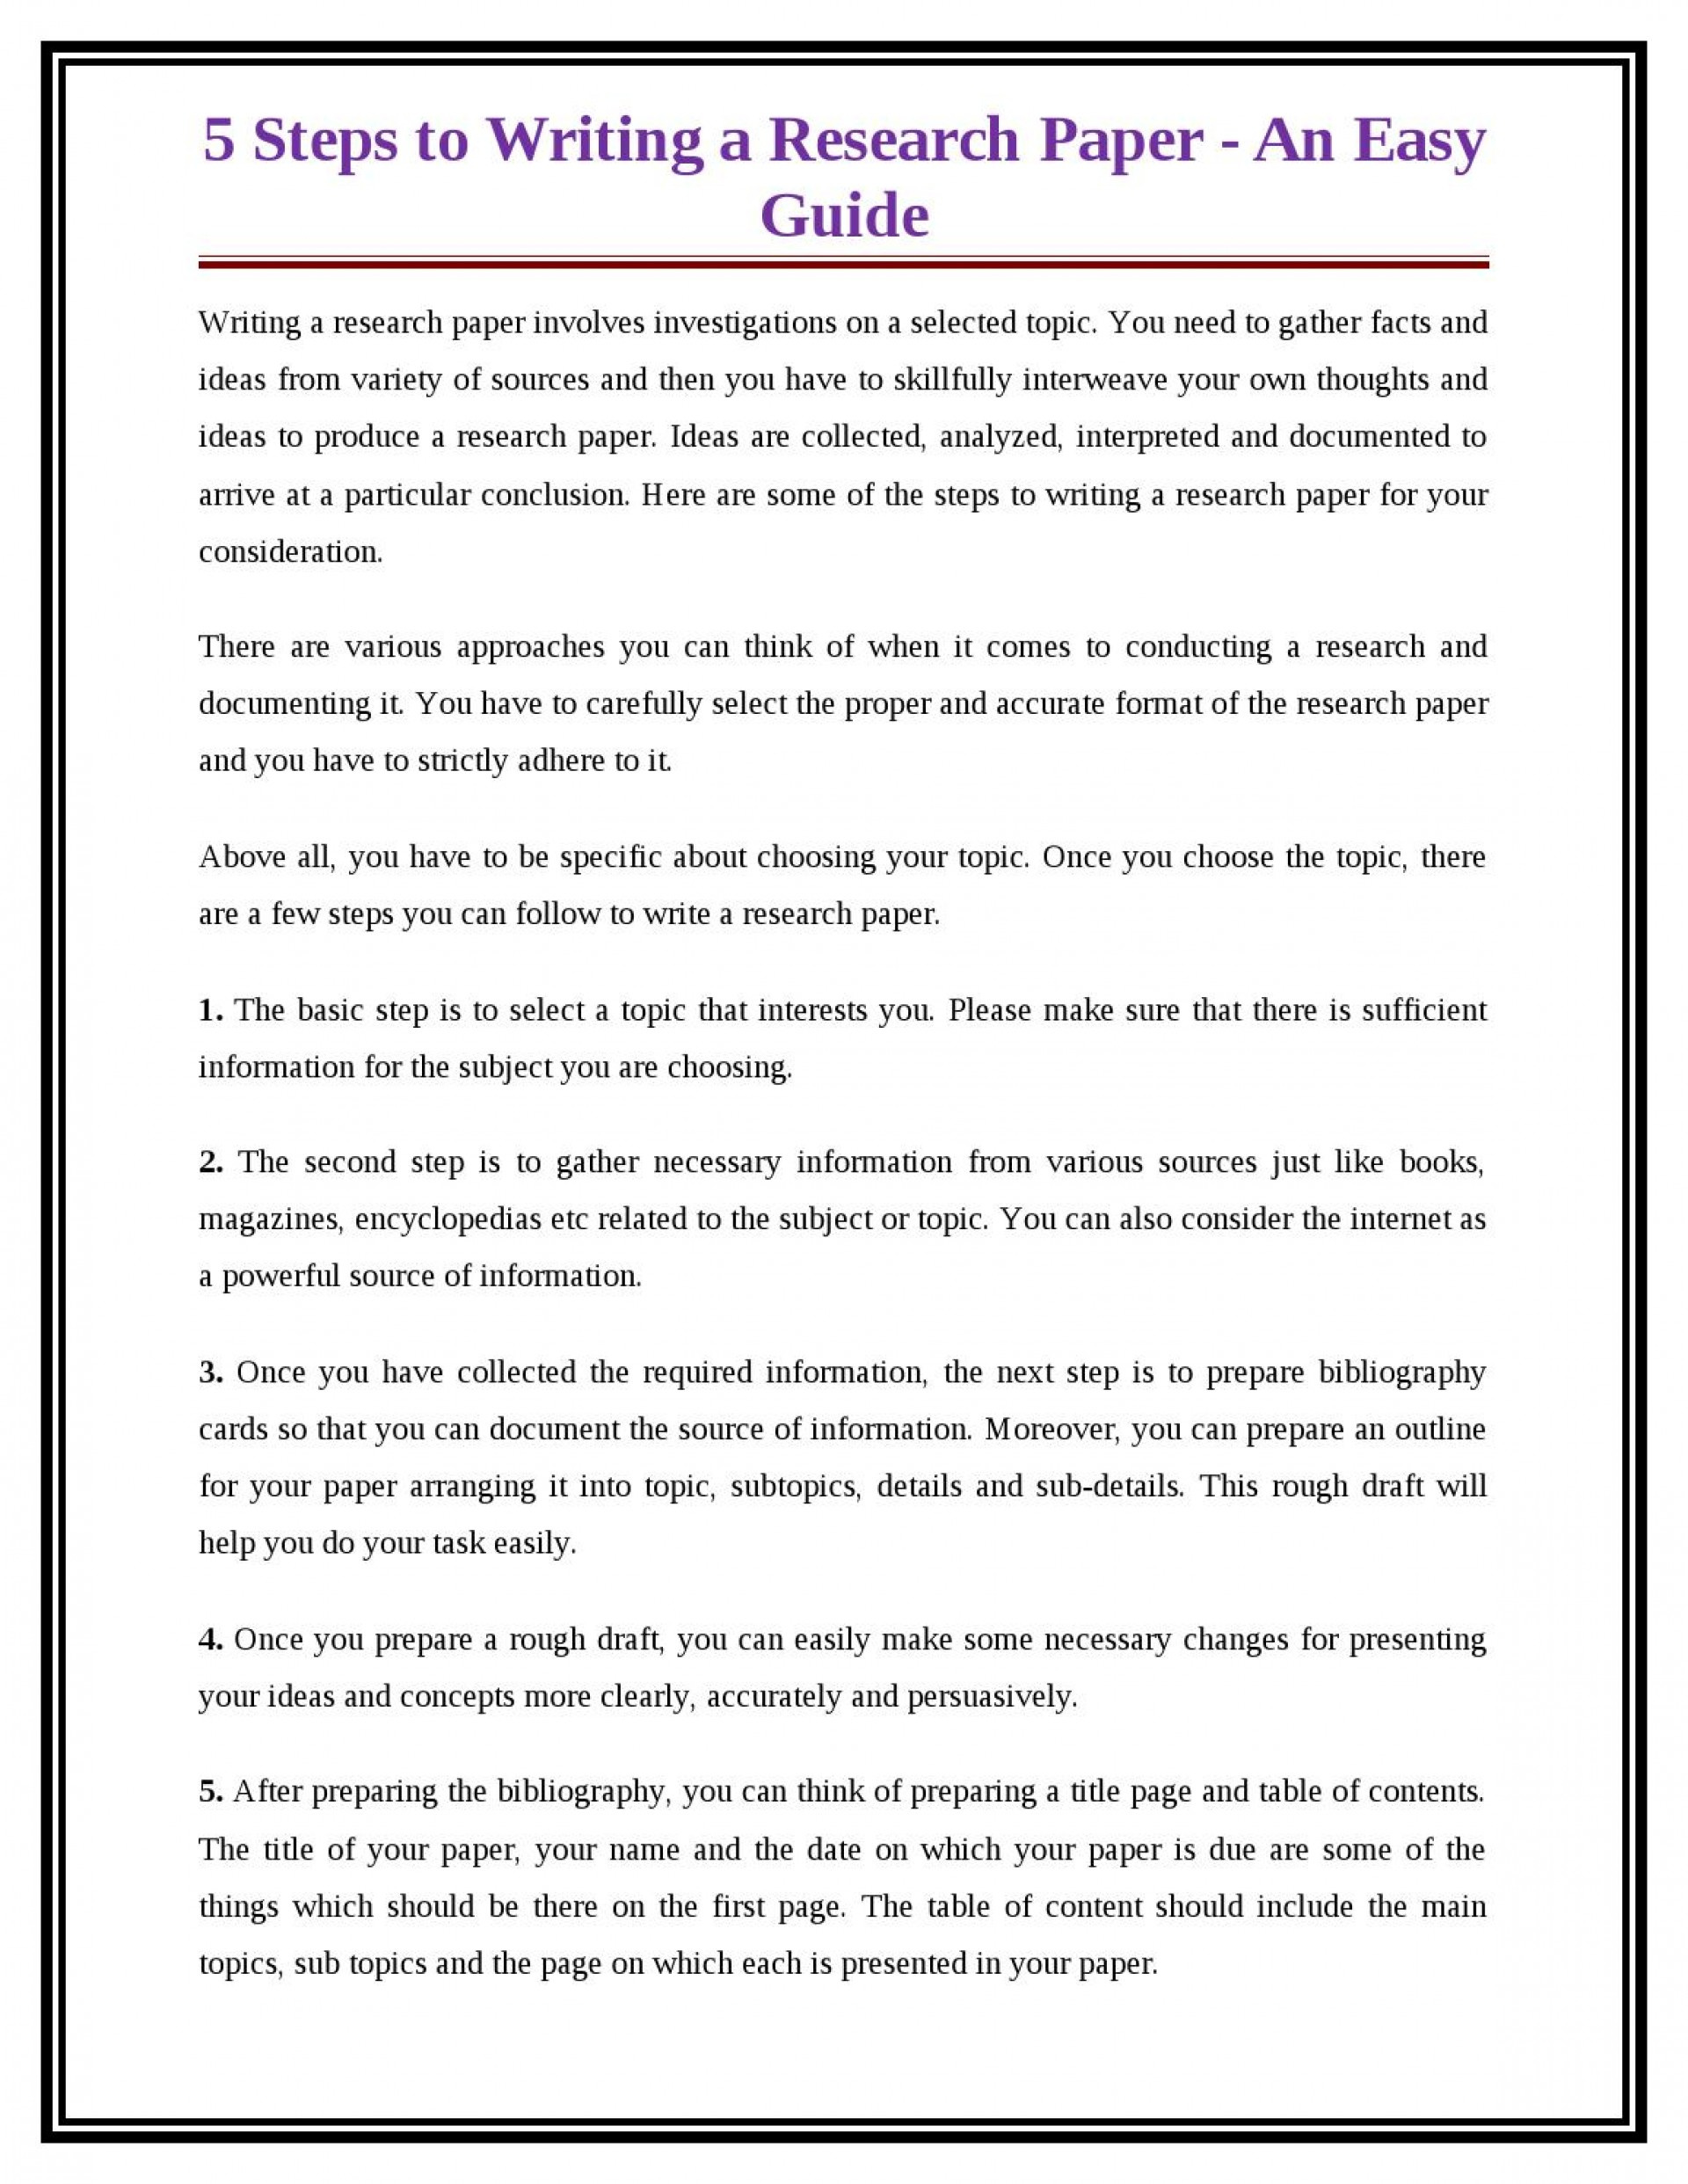 003 How To Make Research Paper Page 1 Incredible A Interesting Thesis Flow 1920